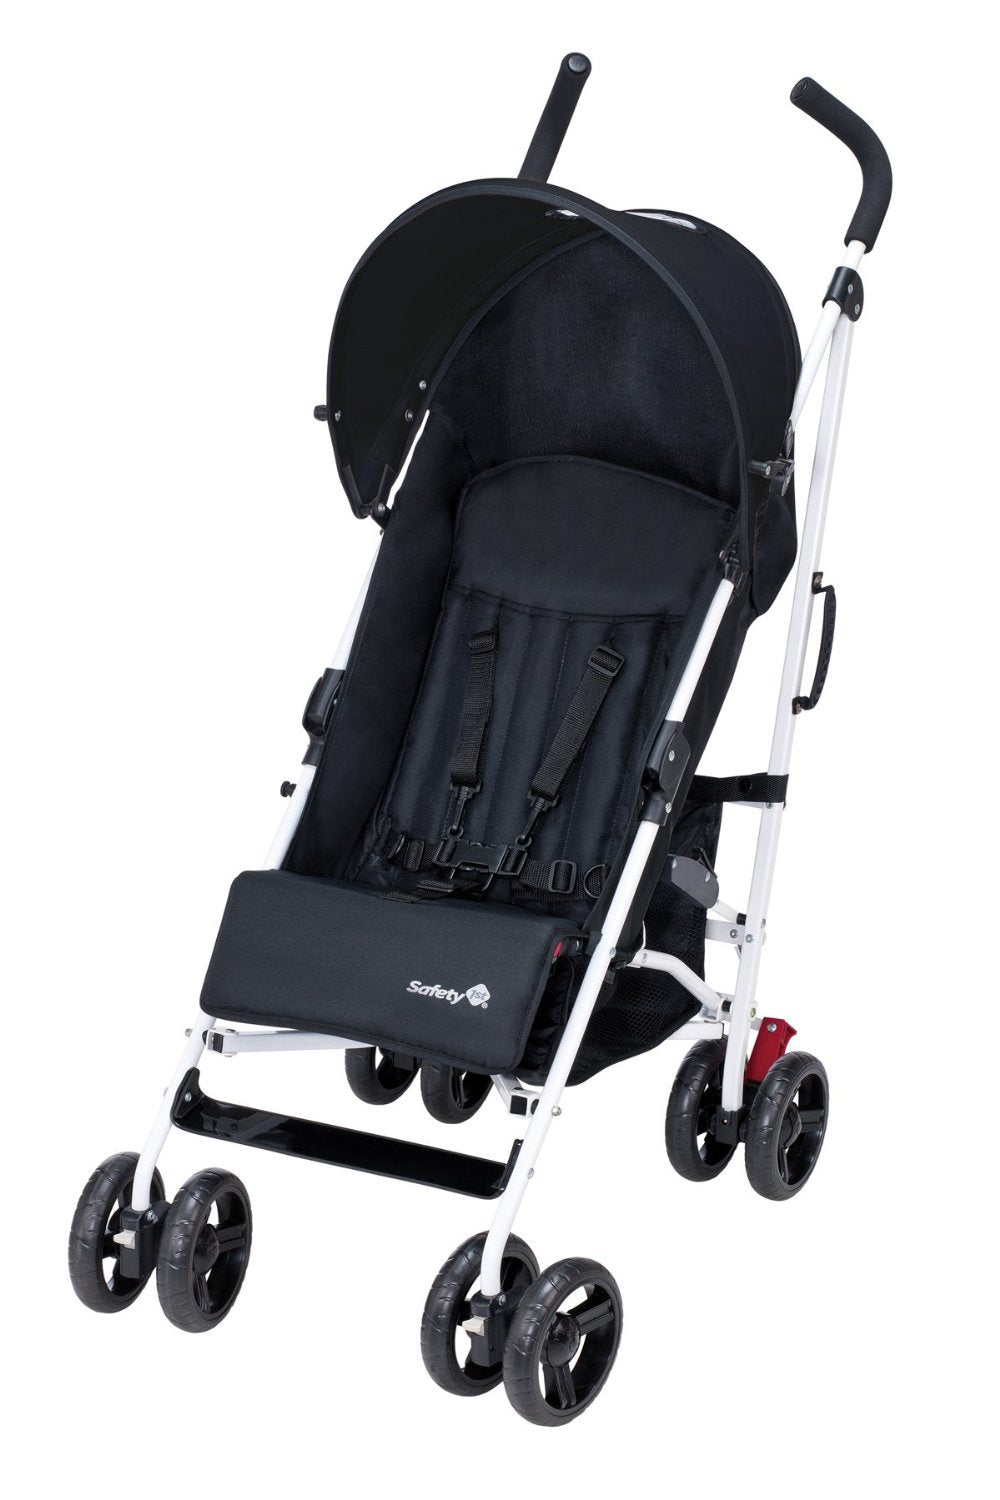 Chicco C6 Umbrella Stroller